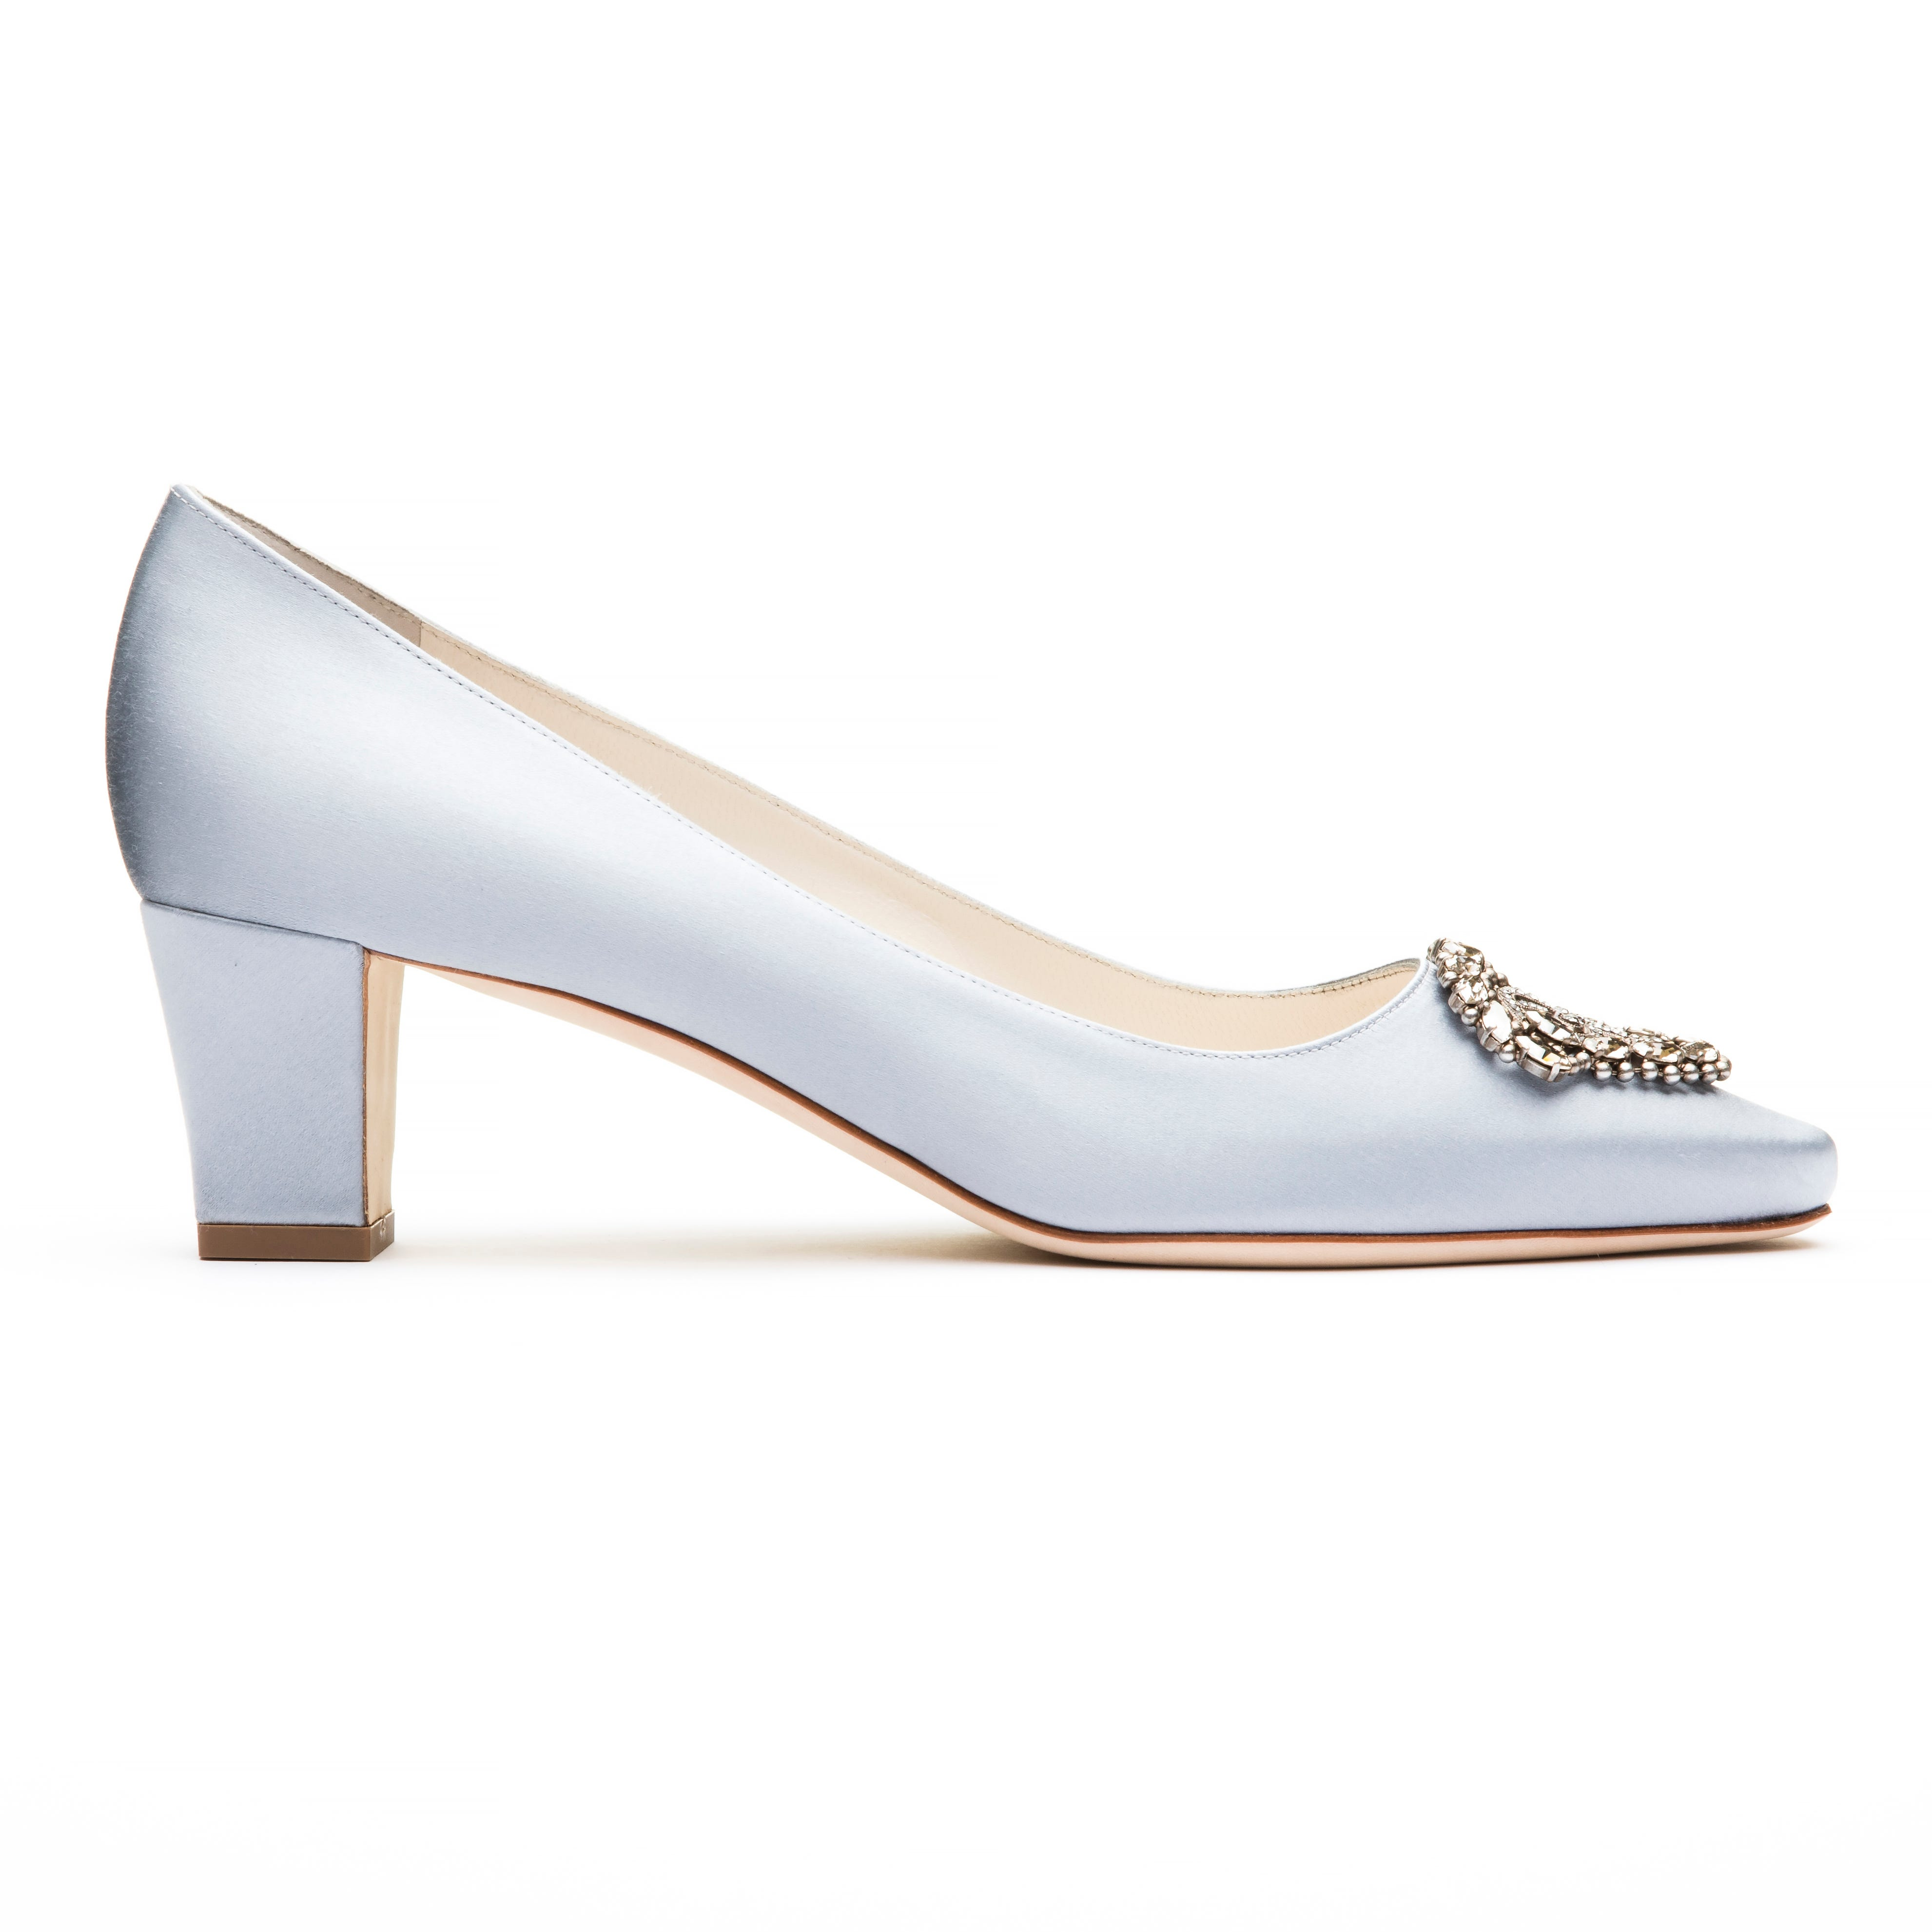 f05a1dbe32f2 Manolo Blahnik Bridal Collection Launch Wedding Shoes